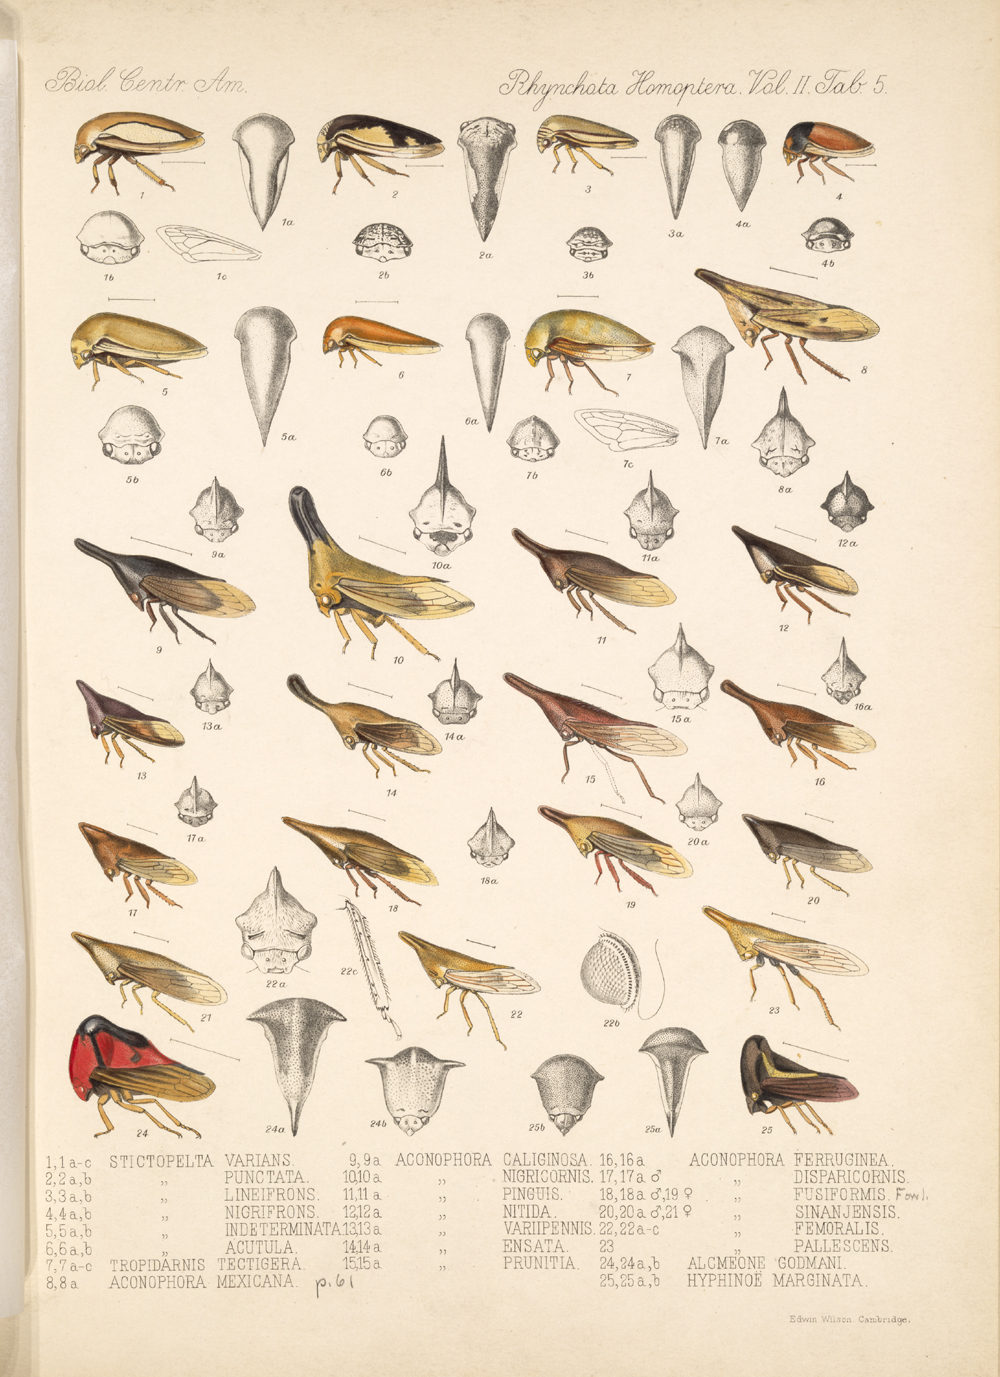 Other Insects,  Image number:bca_18_02_01_363